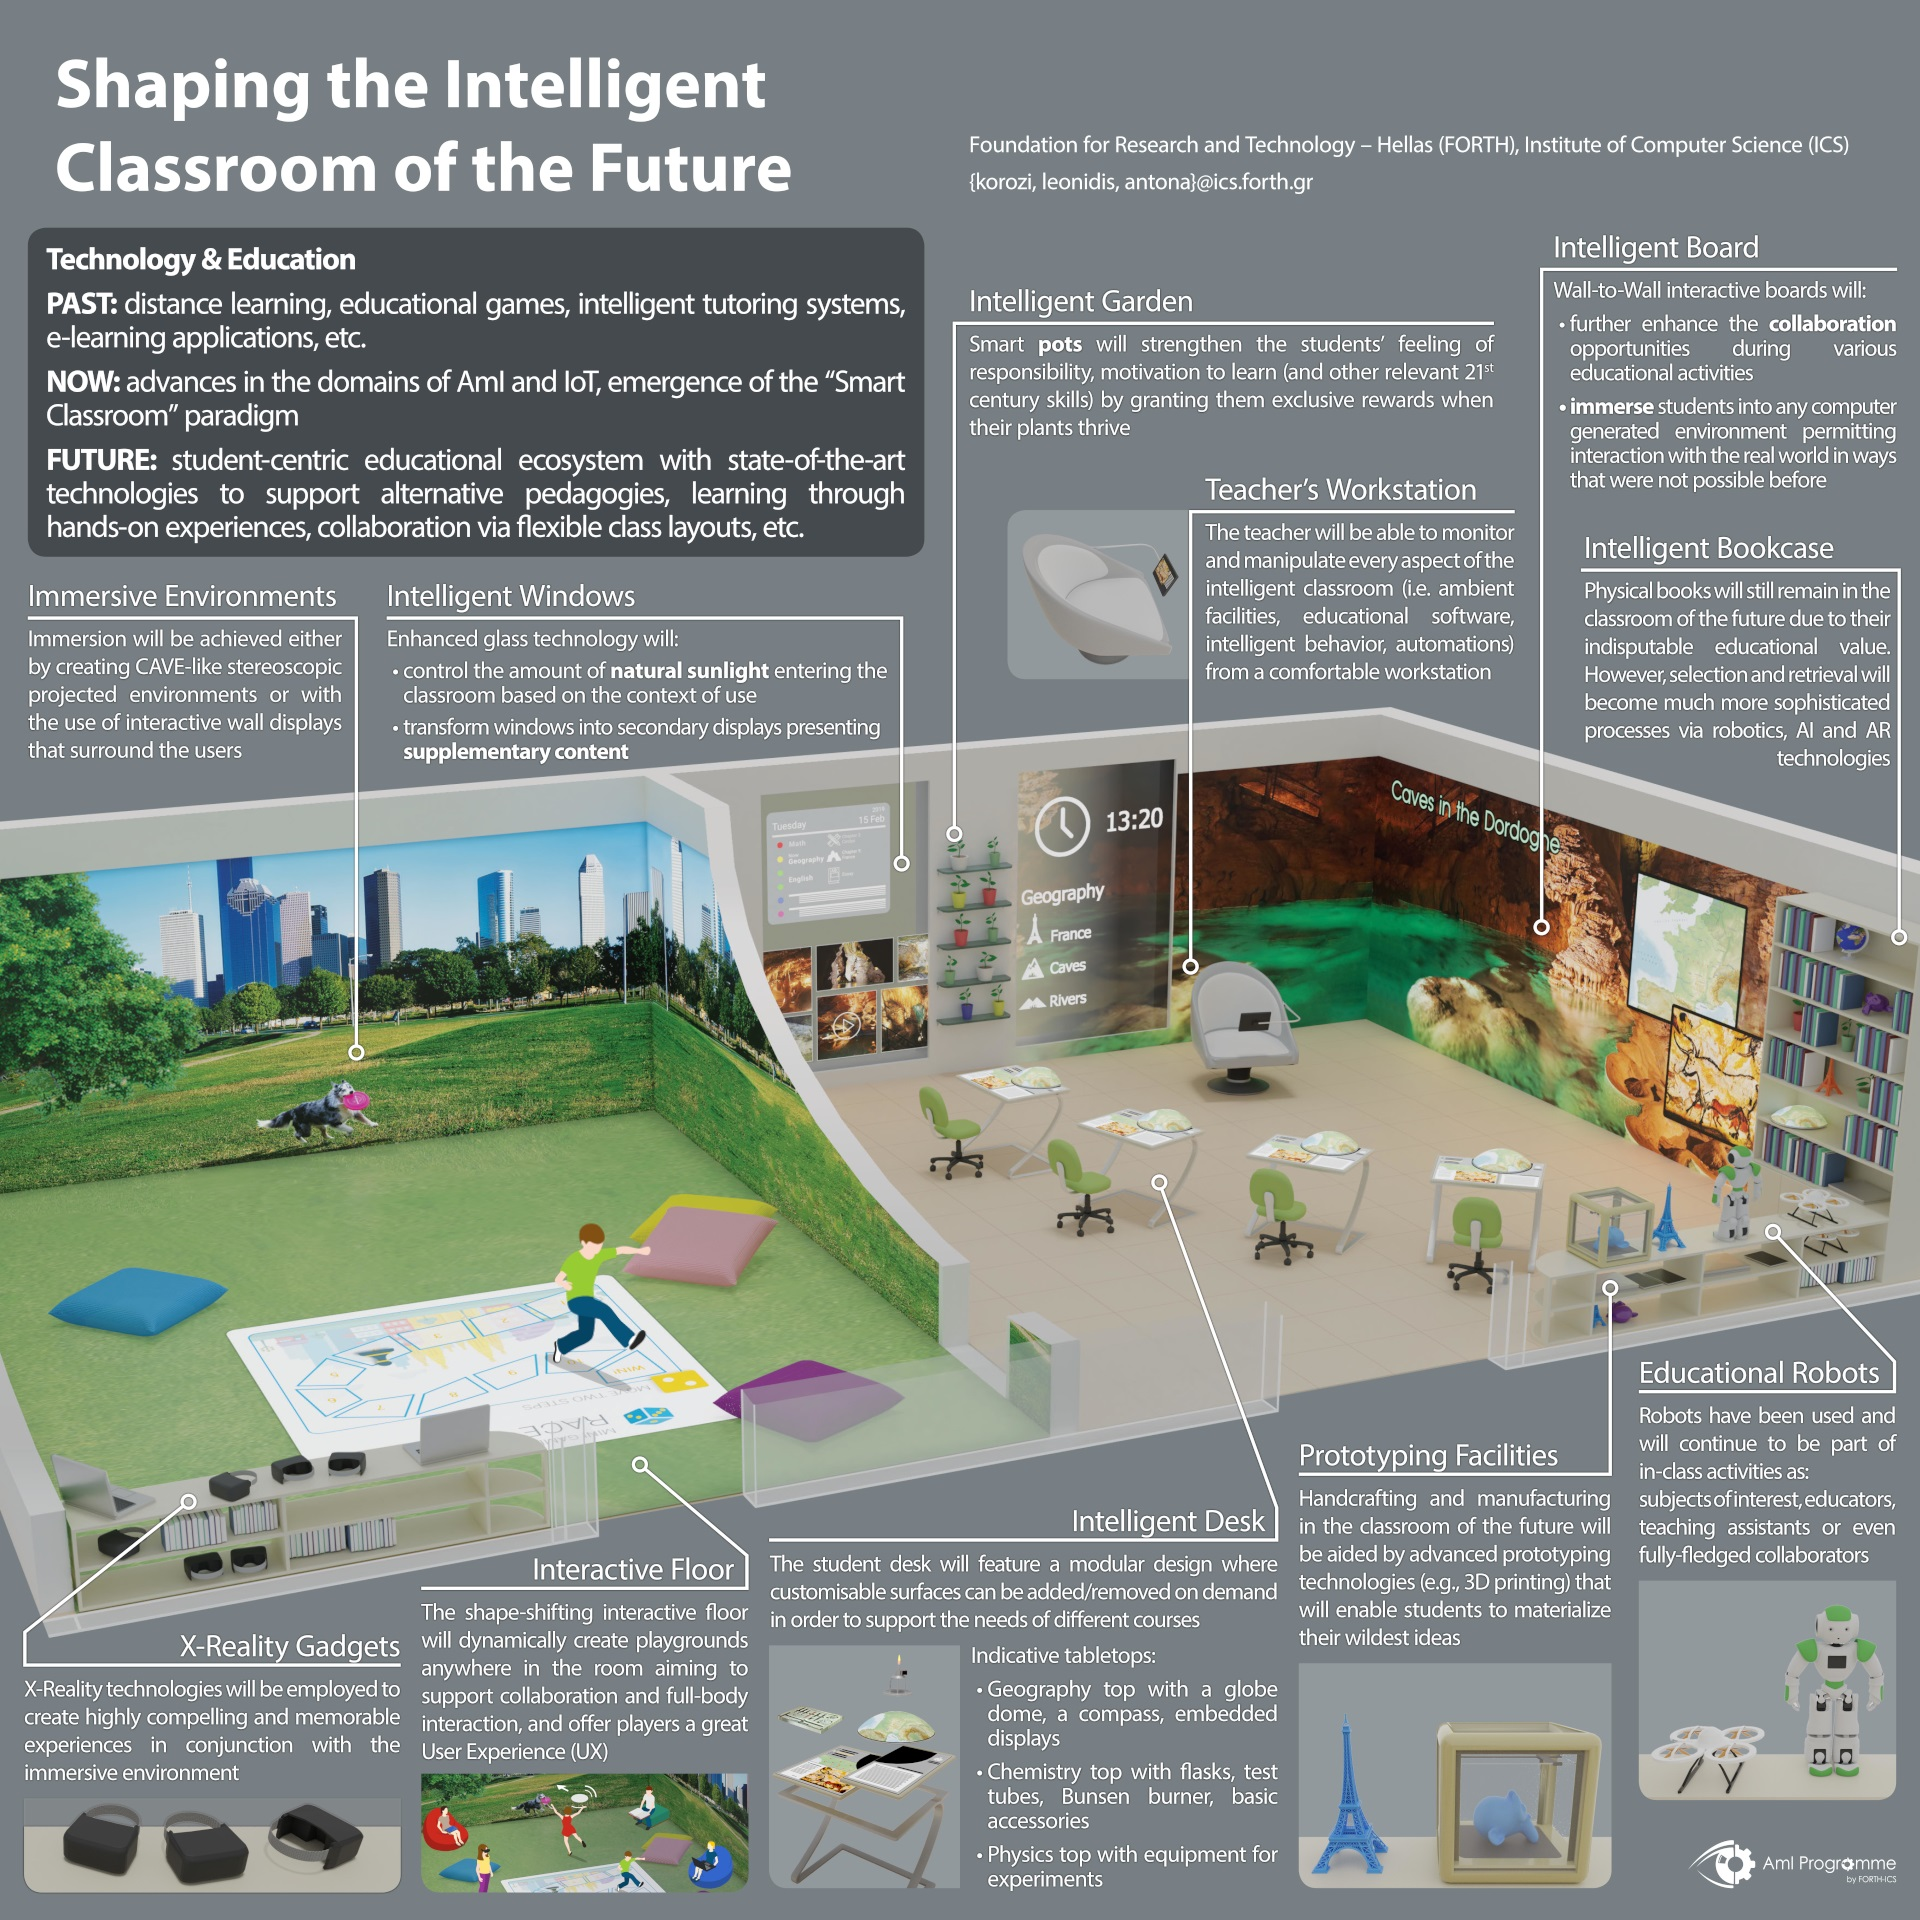 Shaping the Intelligent Classroom of the Future